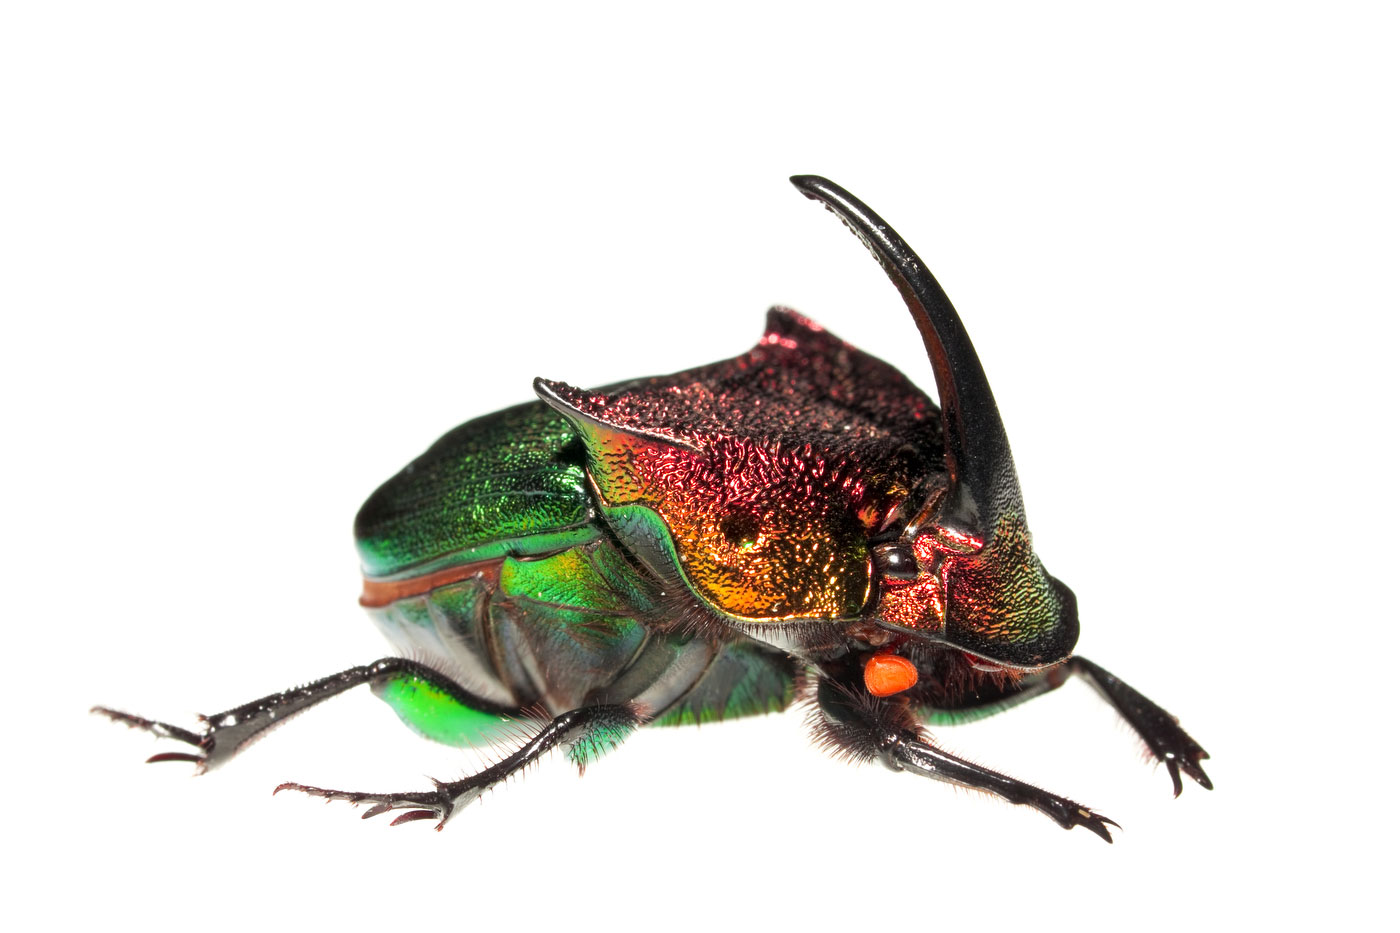 Rainbow Scarab, Phanaeus vindex, photo